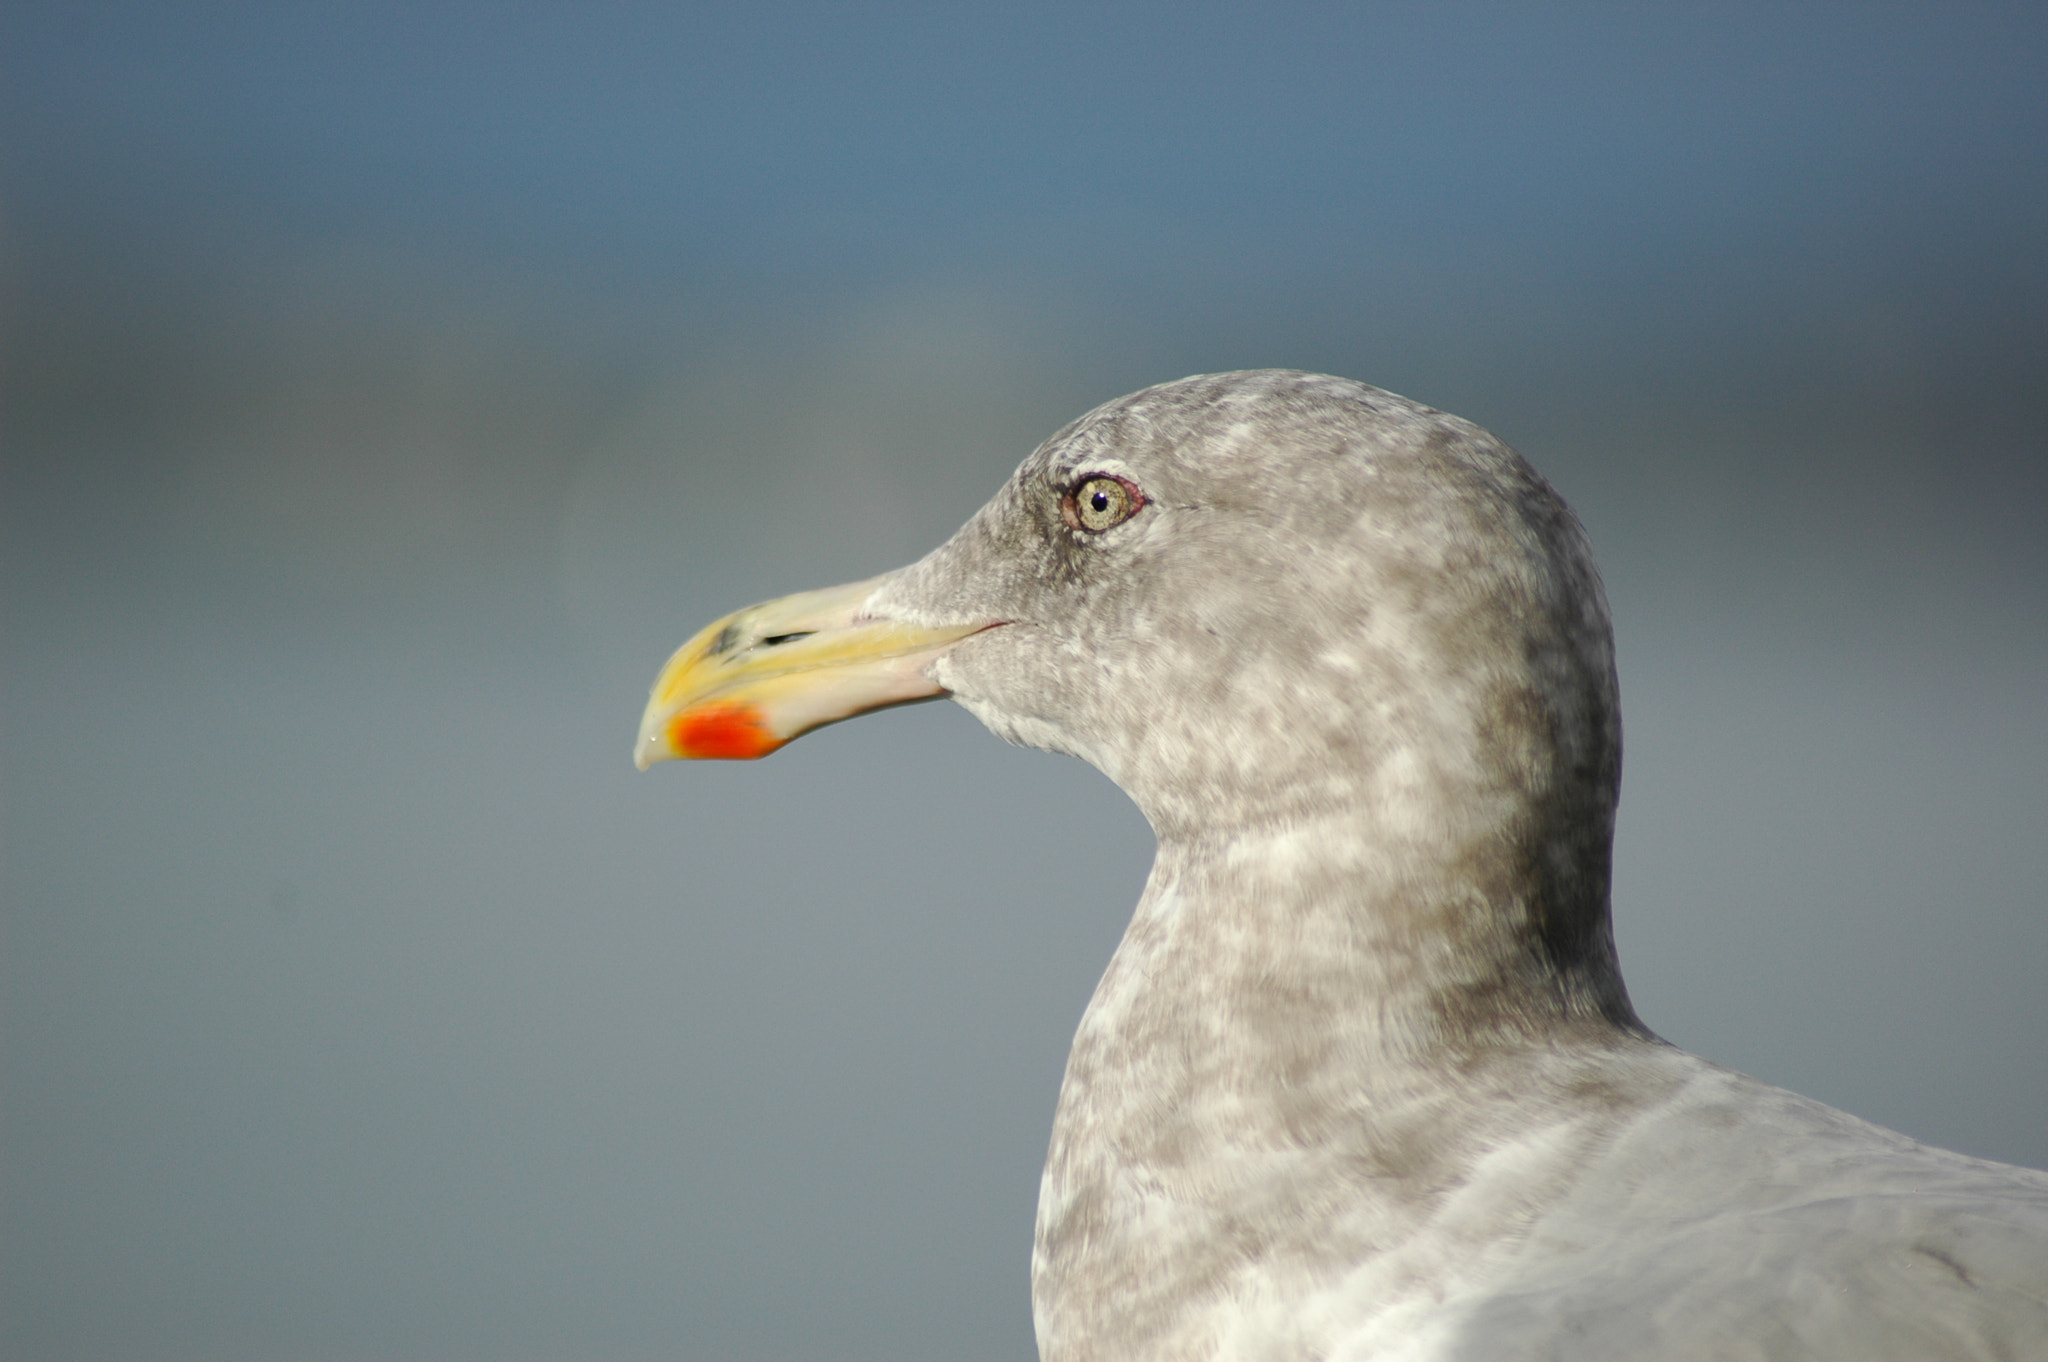 Photograph Seagull Head by Dominic Ferenczy on 500px